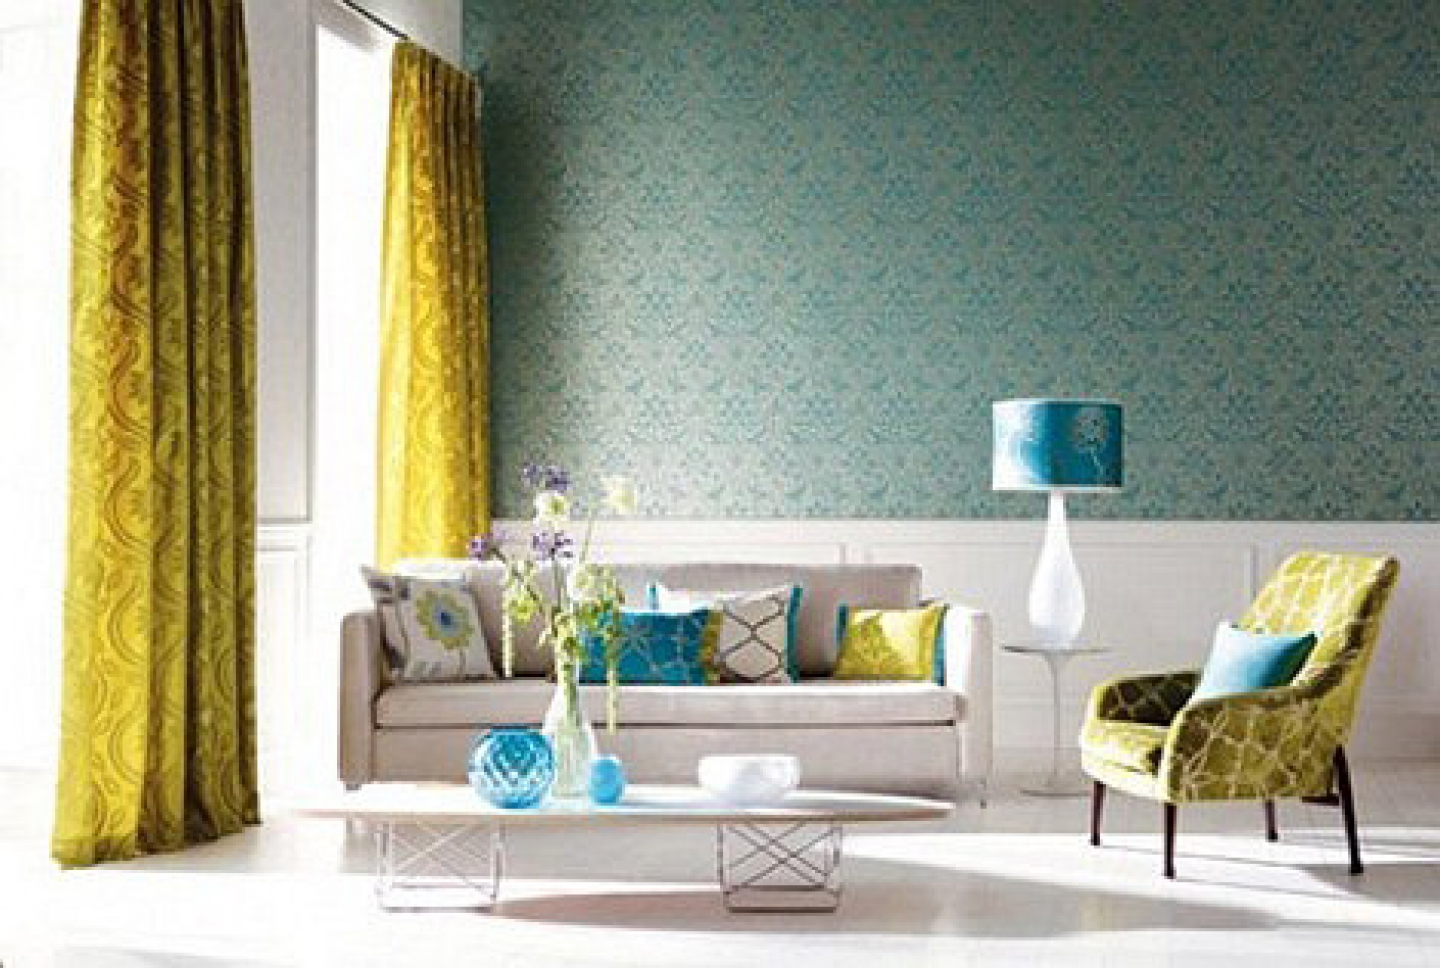 Living Room Home Deocr 11 awesome and beautiful home decor inspirations teal yellow living room